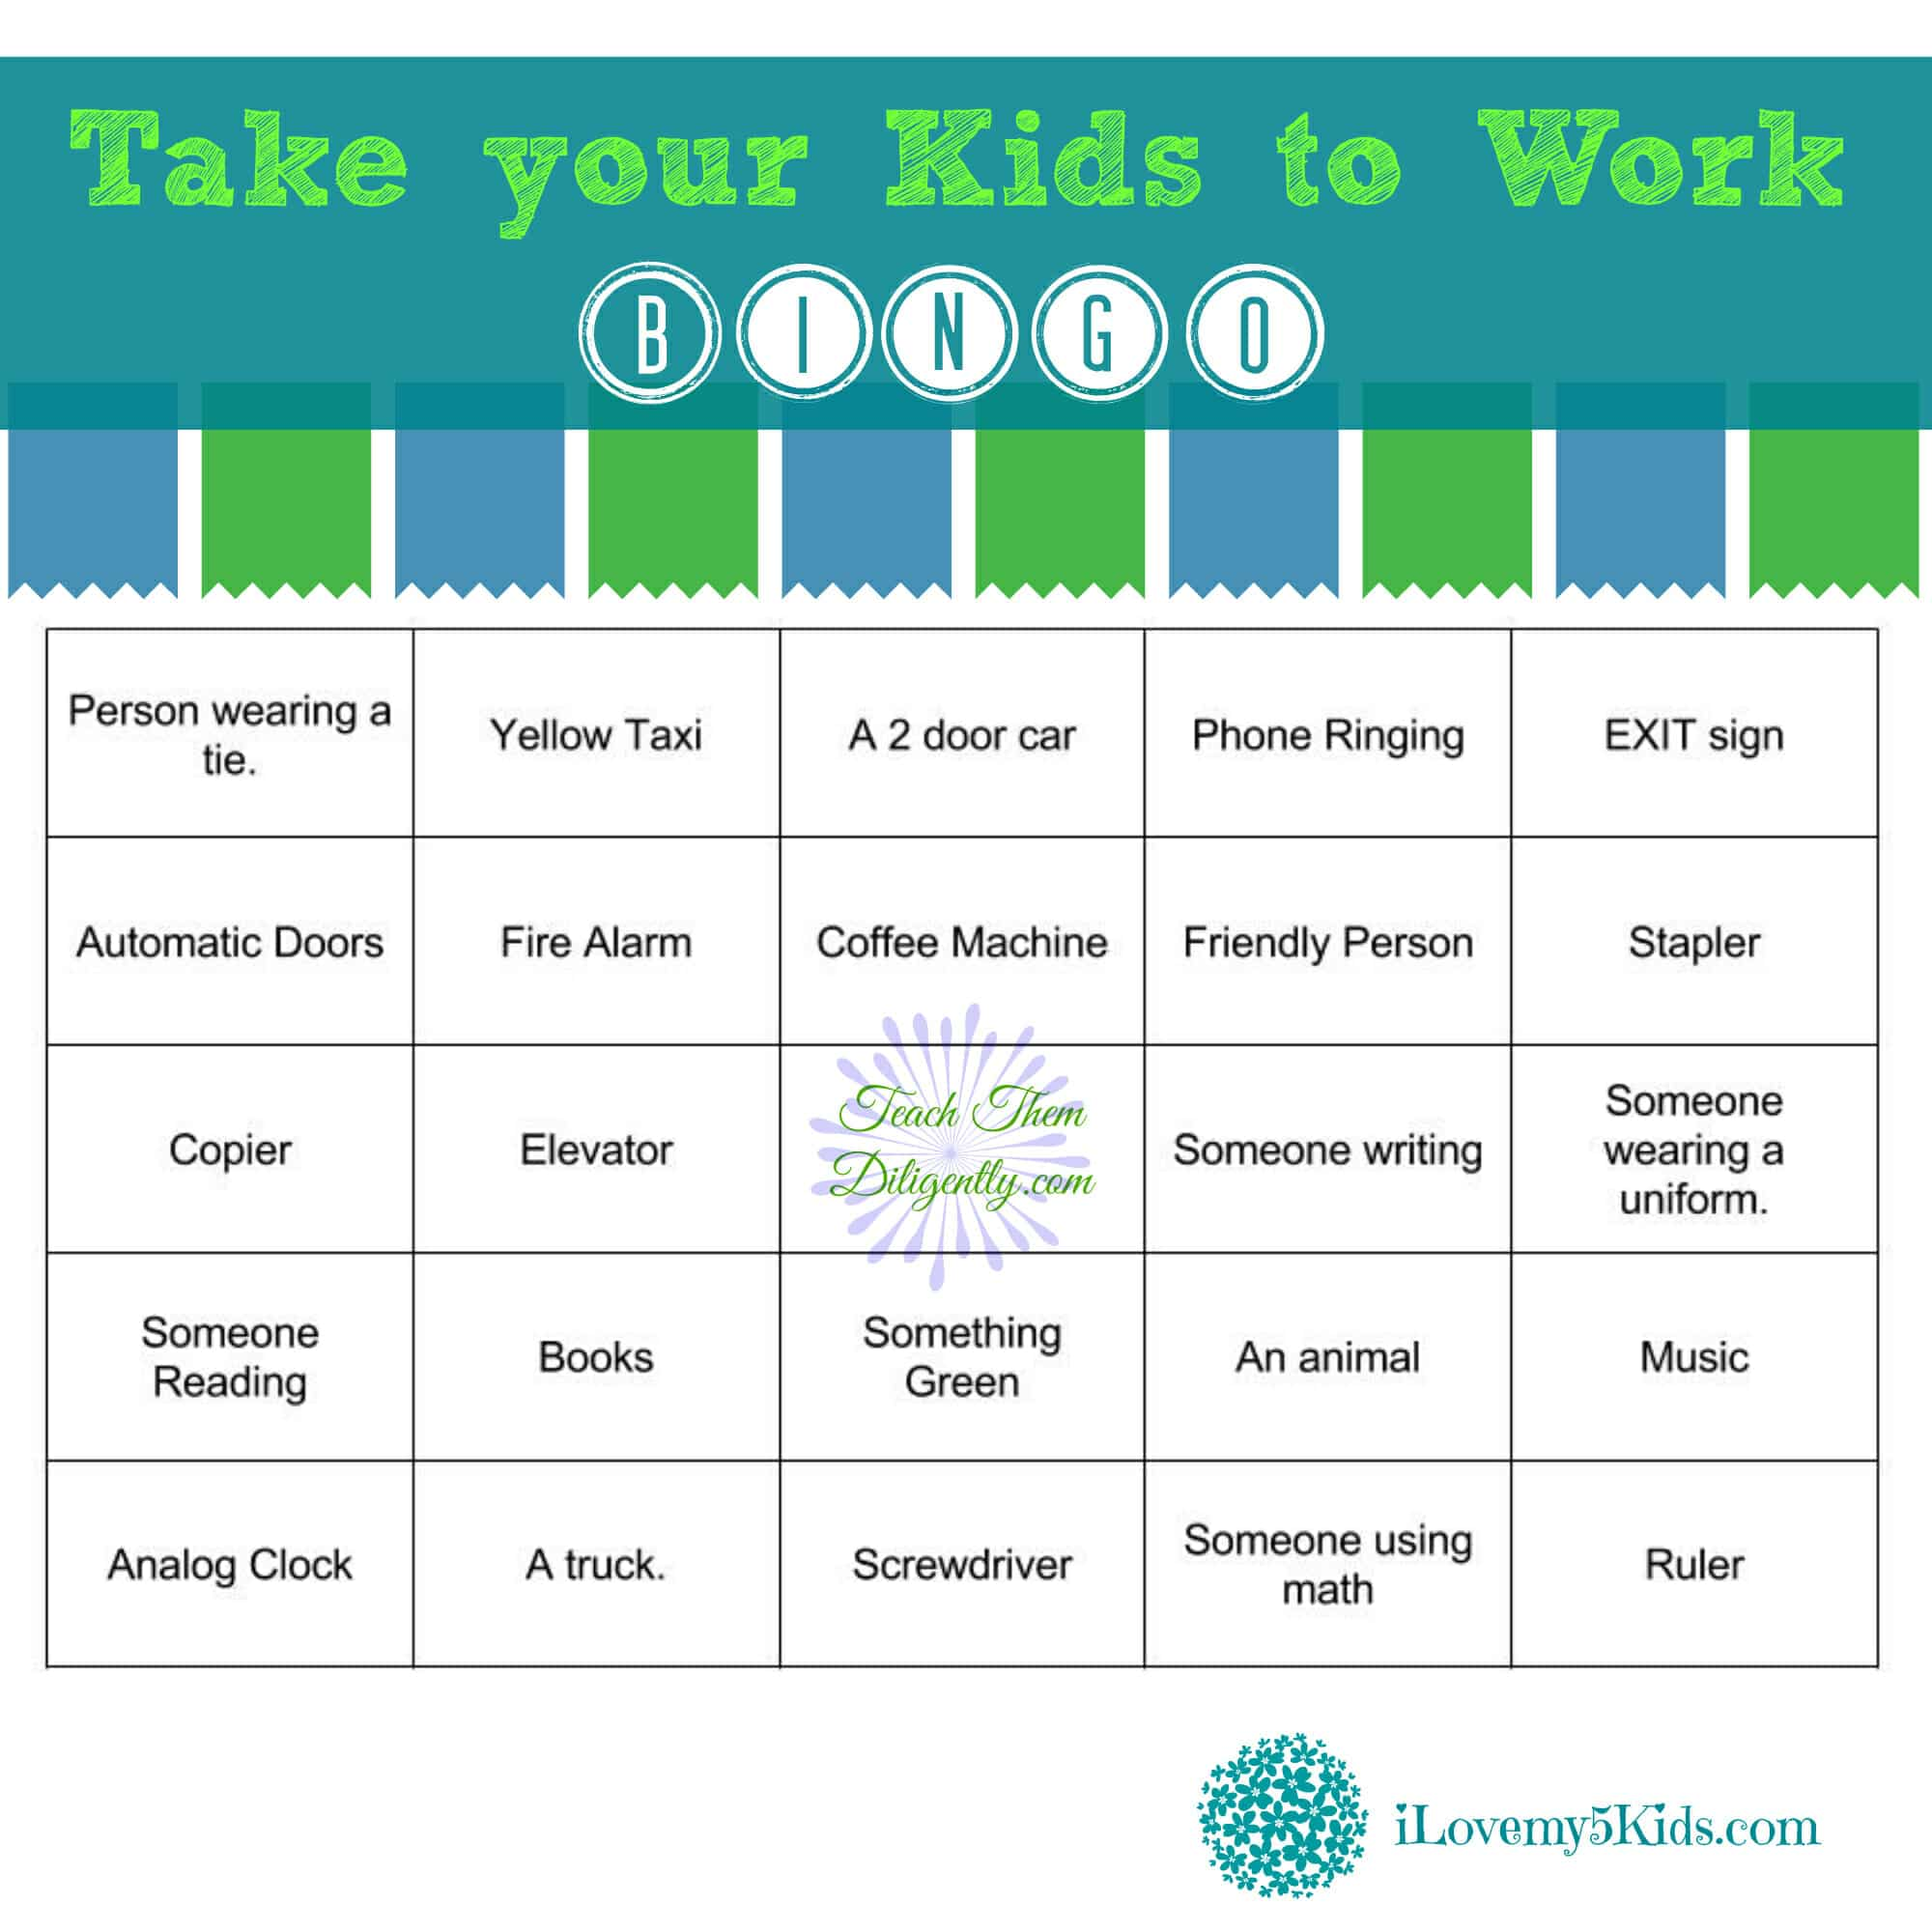 Take your kids to work Bingo